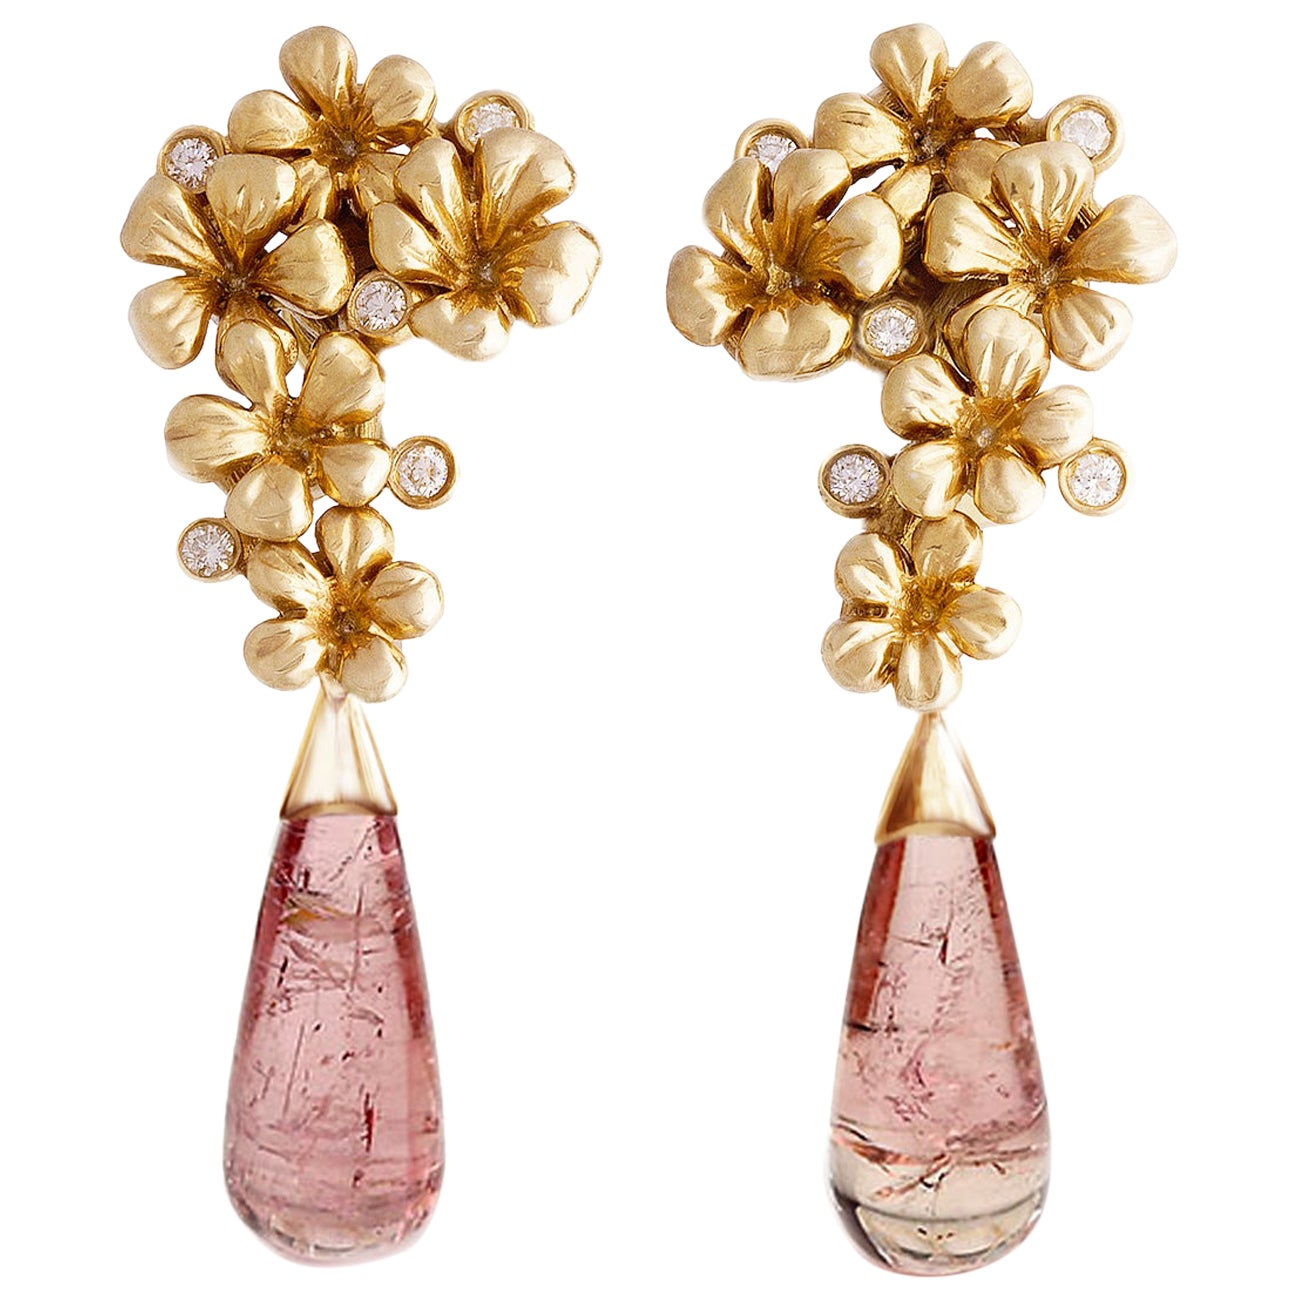 18 Karat Yellow Gold Cocktail Clip-On Earrings with Diamonds and Tourmalines